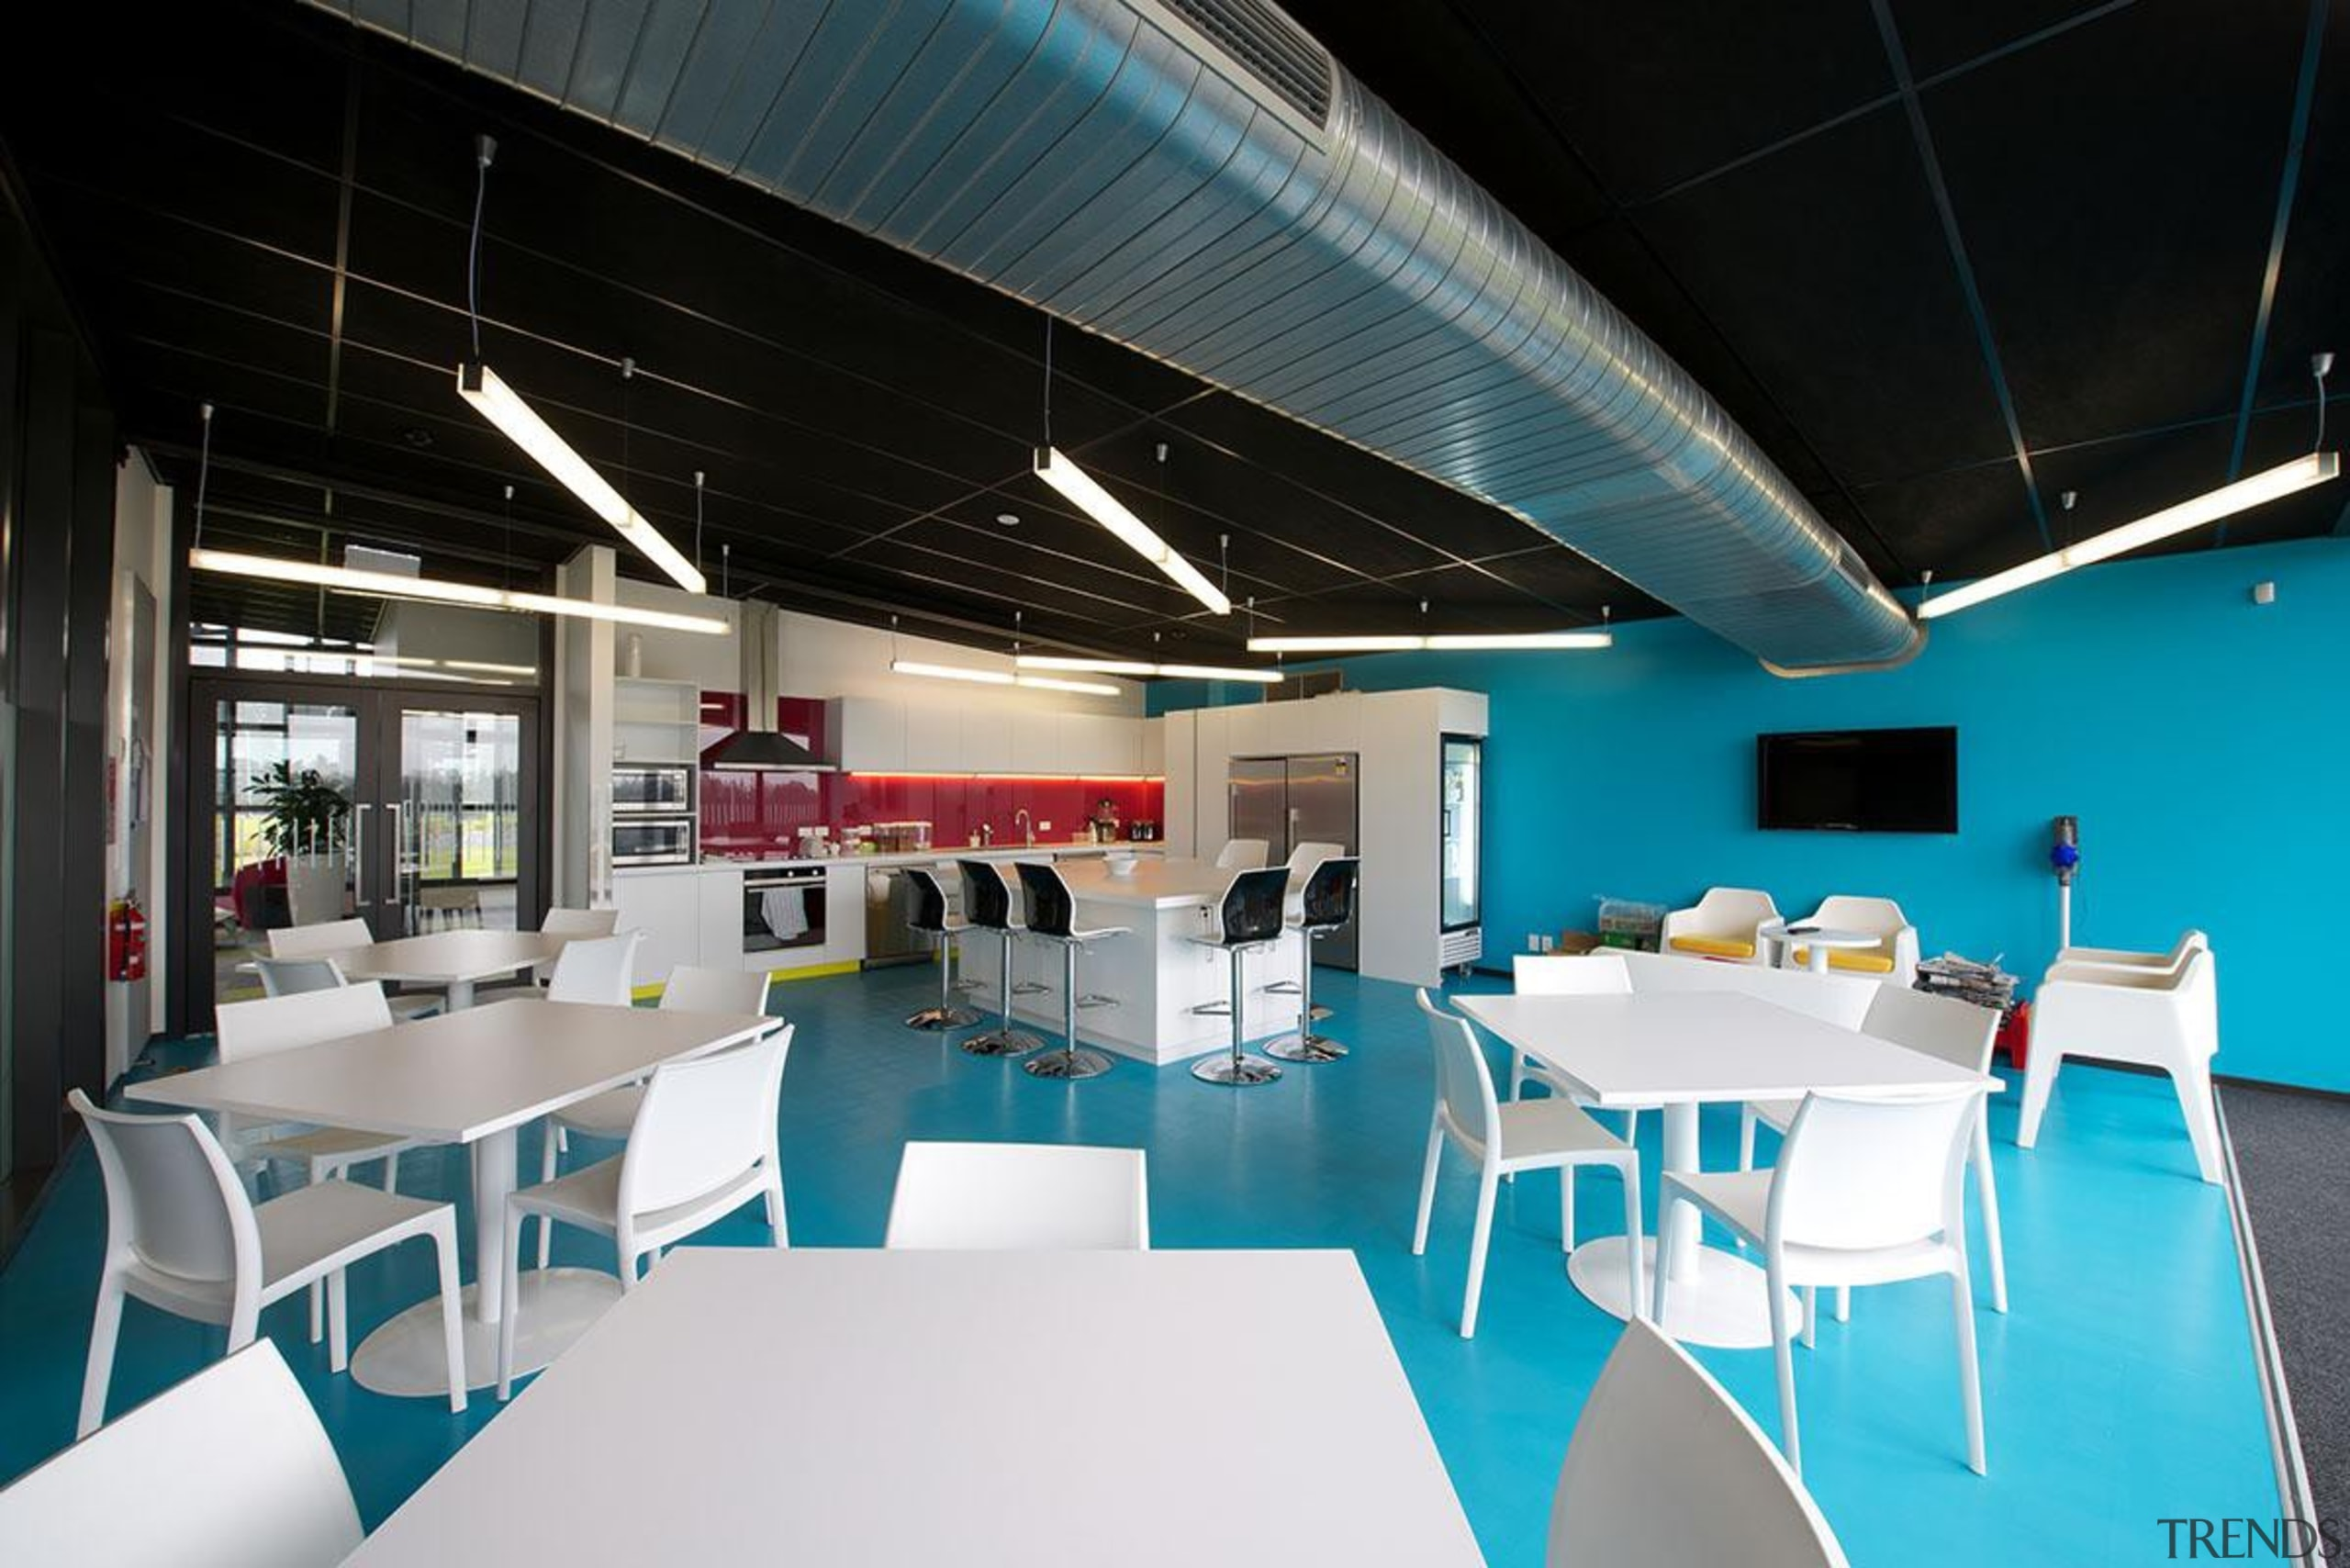 NOMINEEMystery Creek (2 of 3) - Hays Commercial architecture, ceiling, interior design, table, black